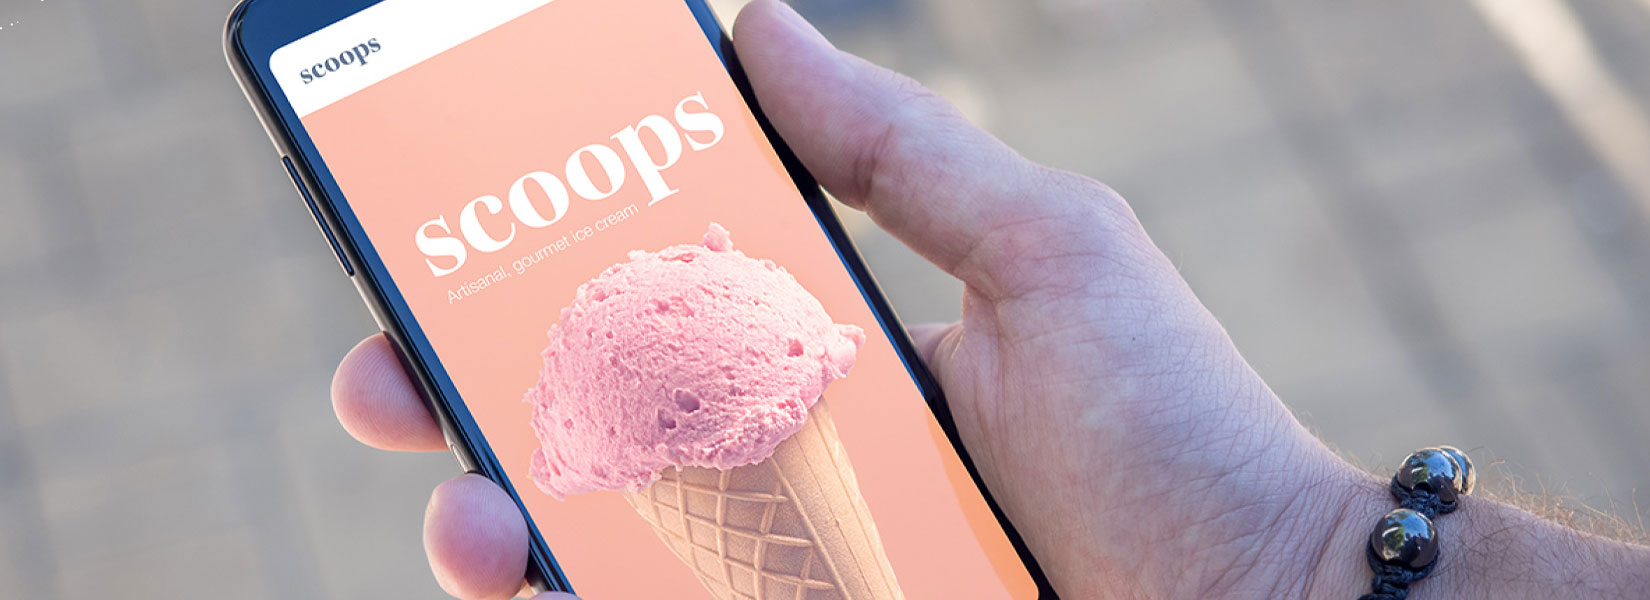 photo of a hand holding a smartphone with an ice-cream app on the screen